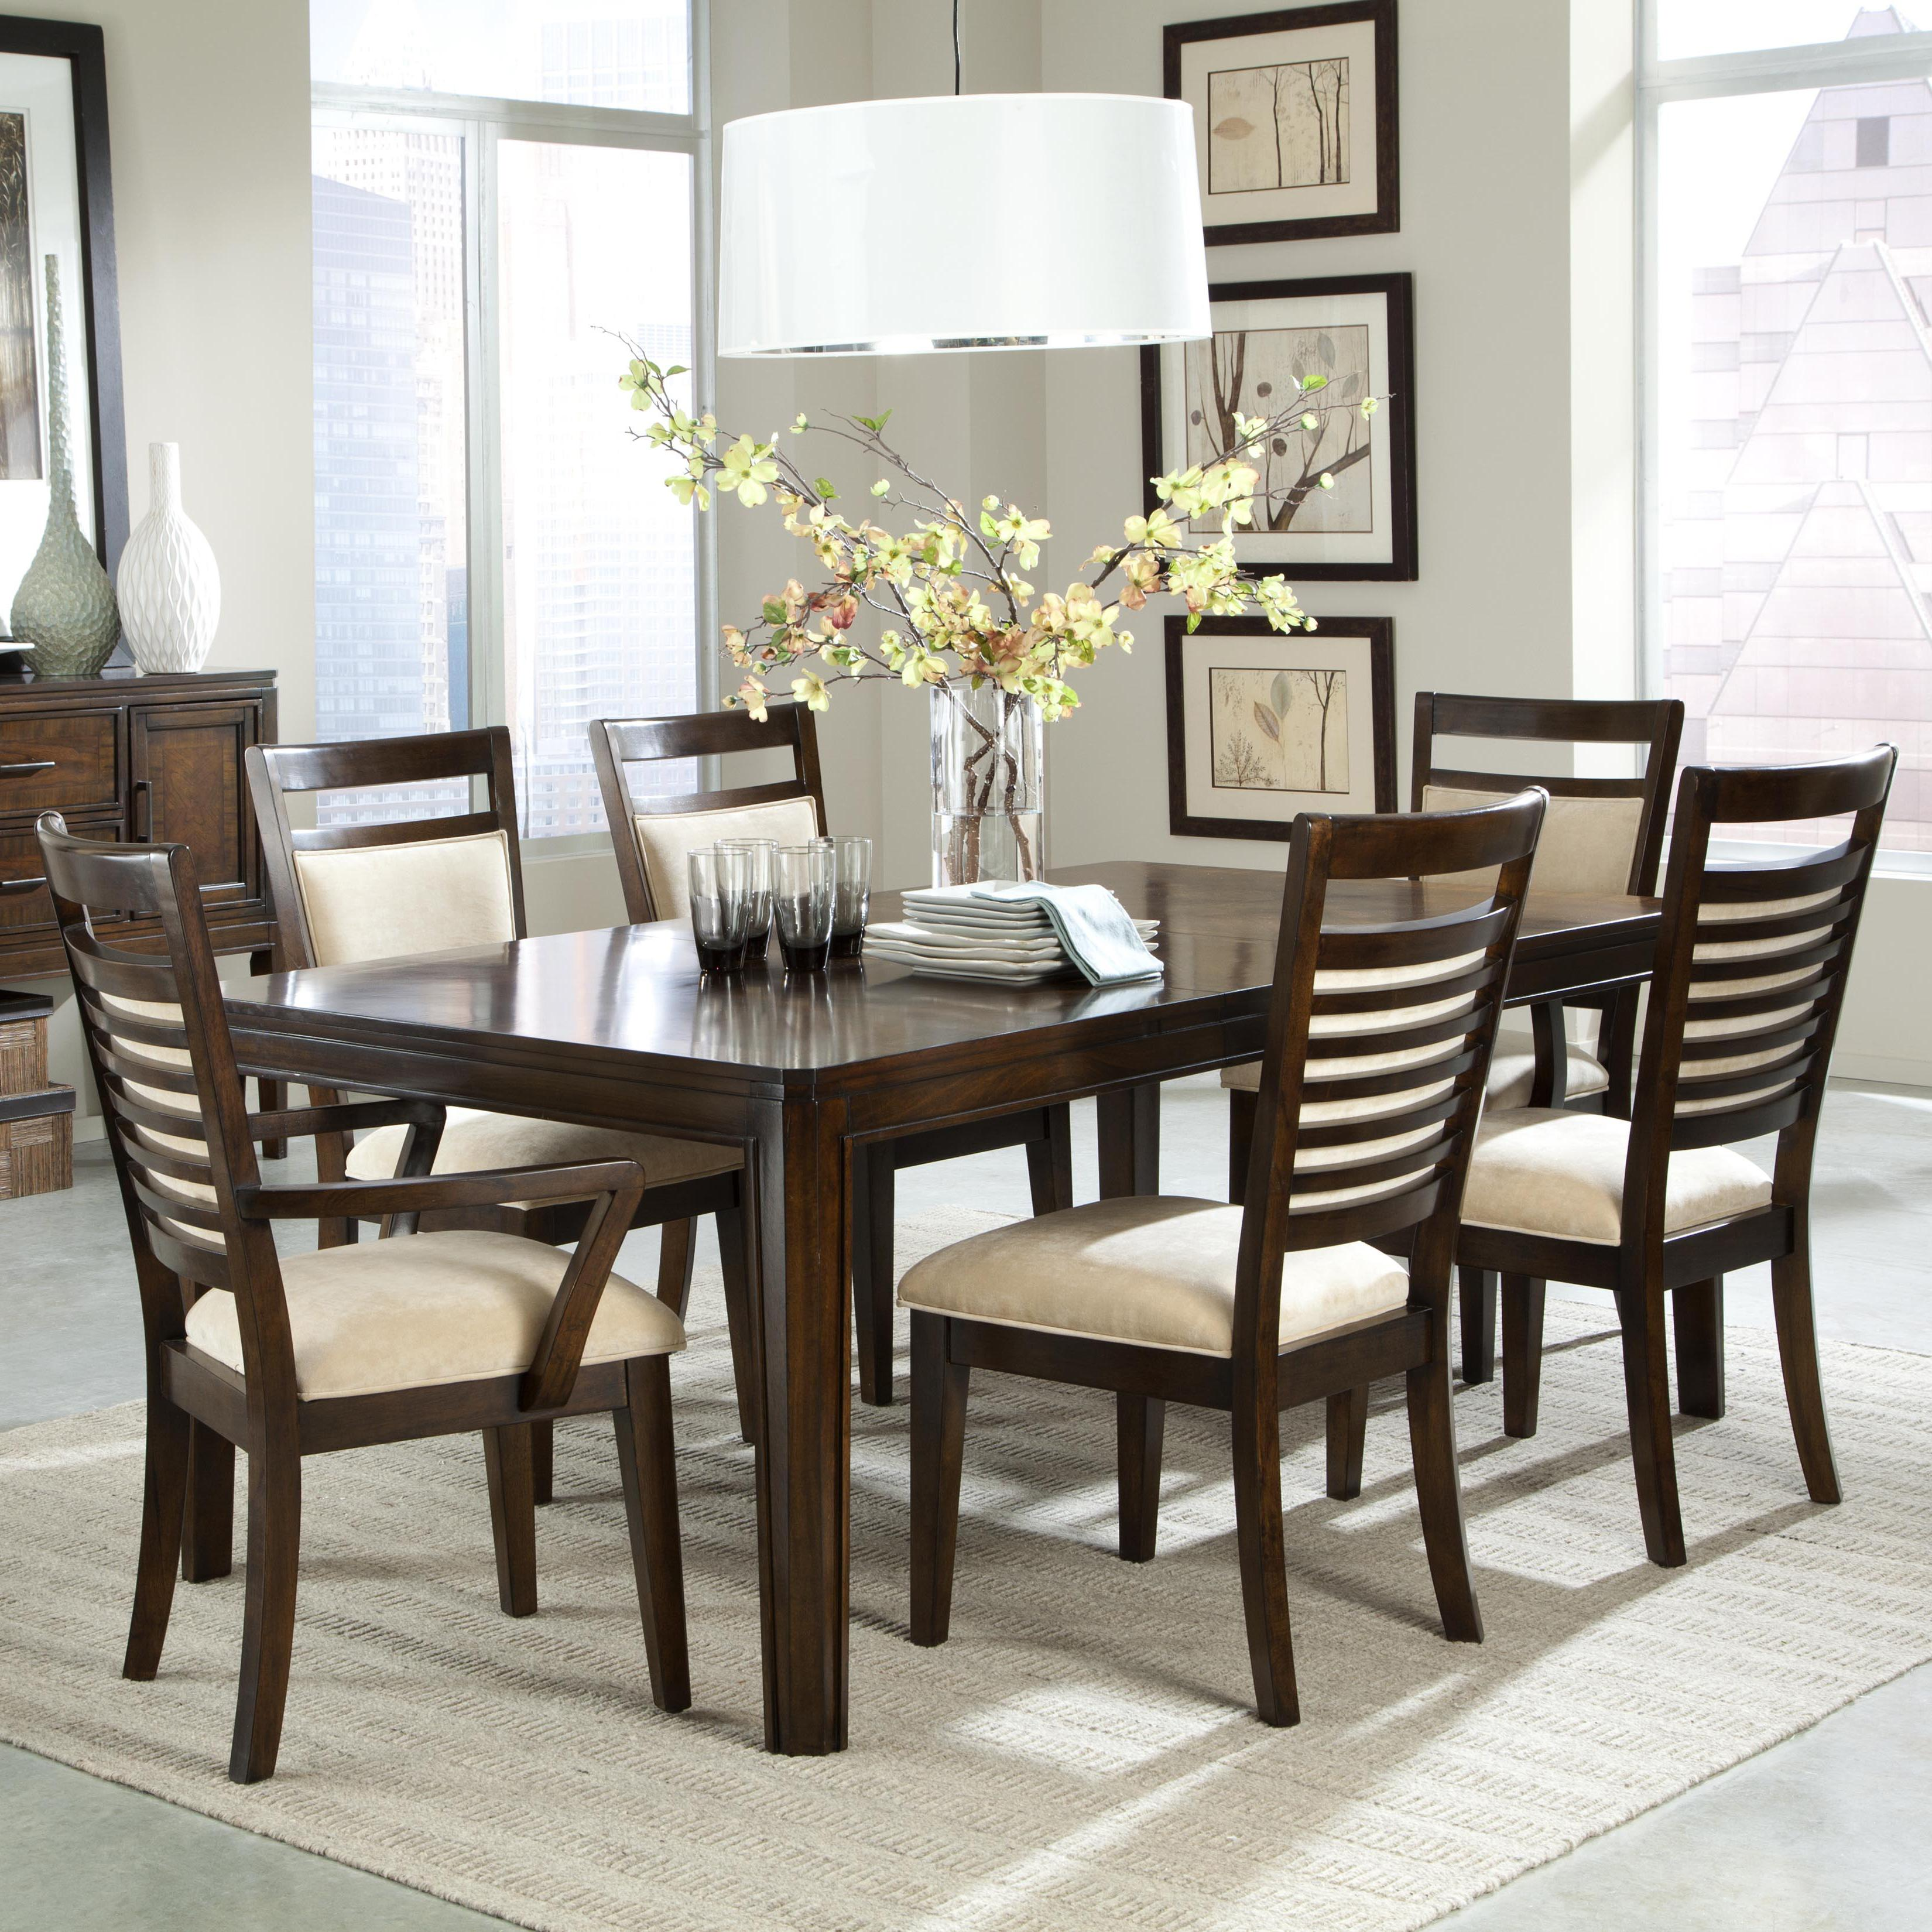 7 Piece Dining Table Set And Upholstered Chairs With